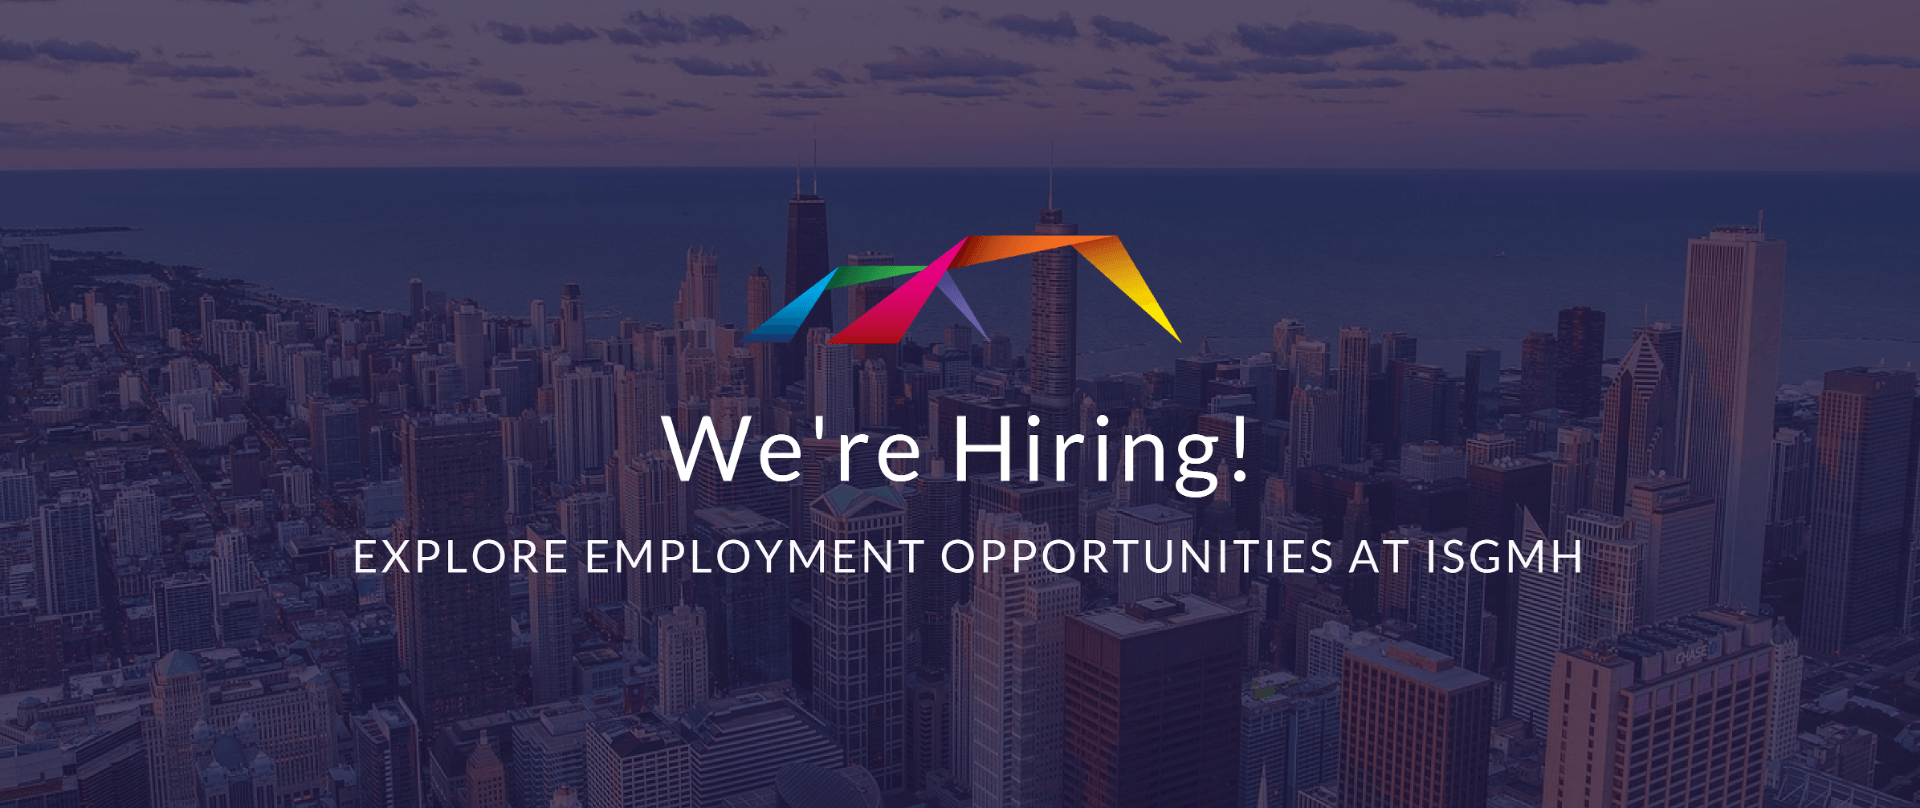 We're hiring at ISGMH! Explore employment opportunities with us.